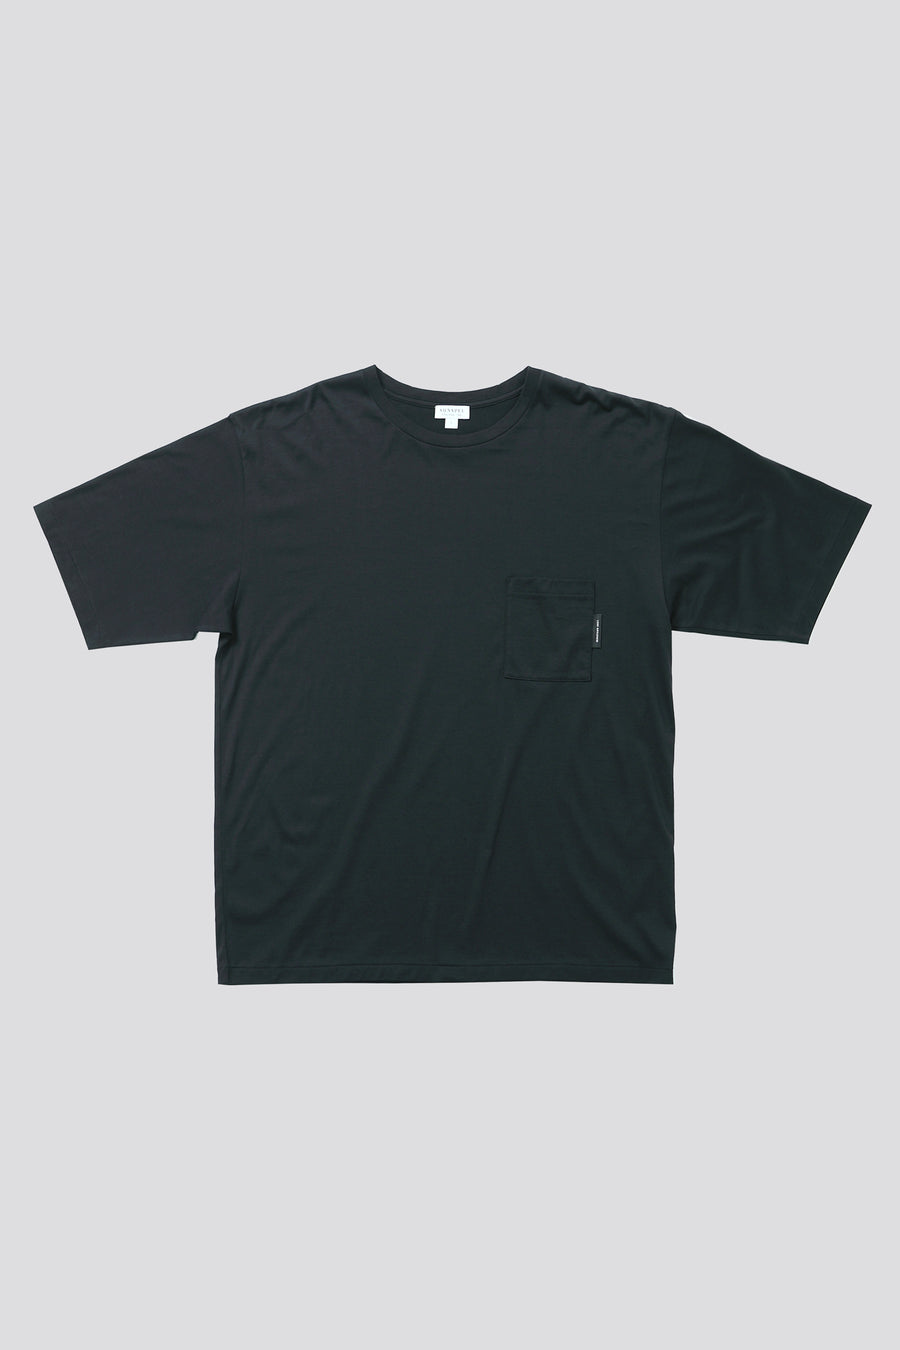 Q82 MTR WIDE POCKET - T【SUNSPEL × MINOTAUR INST.】